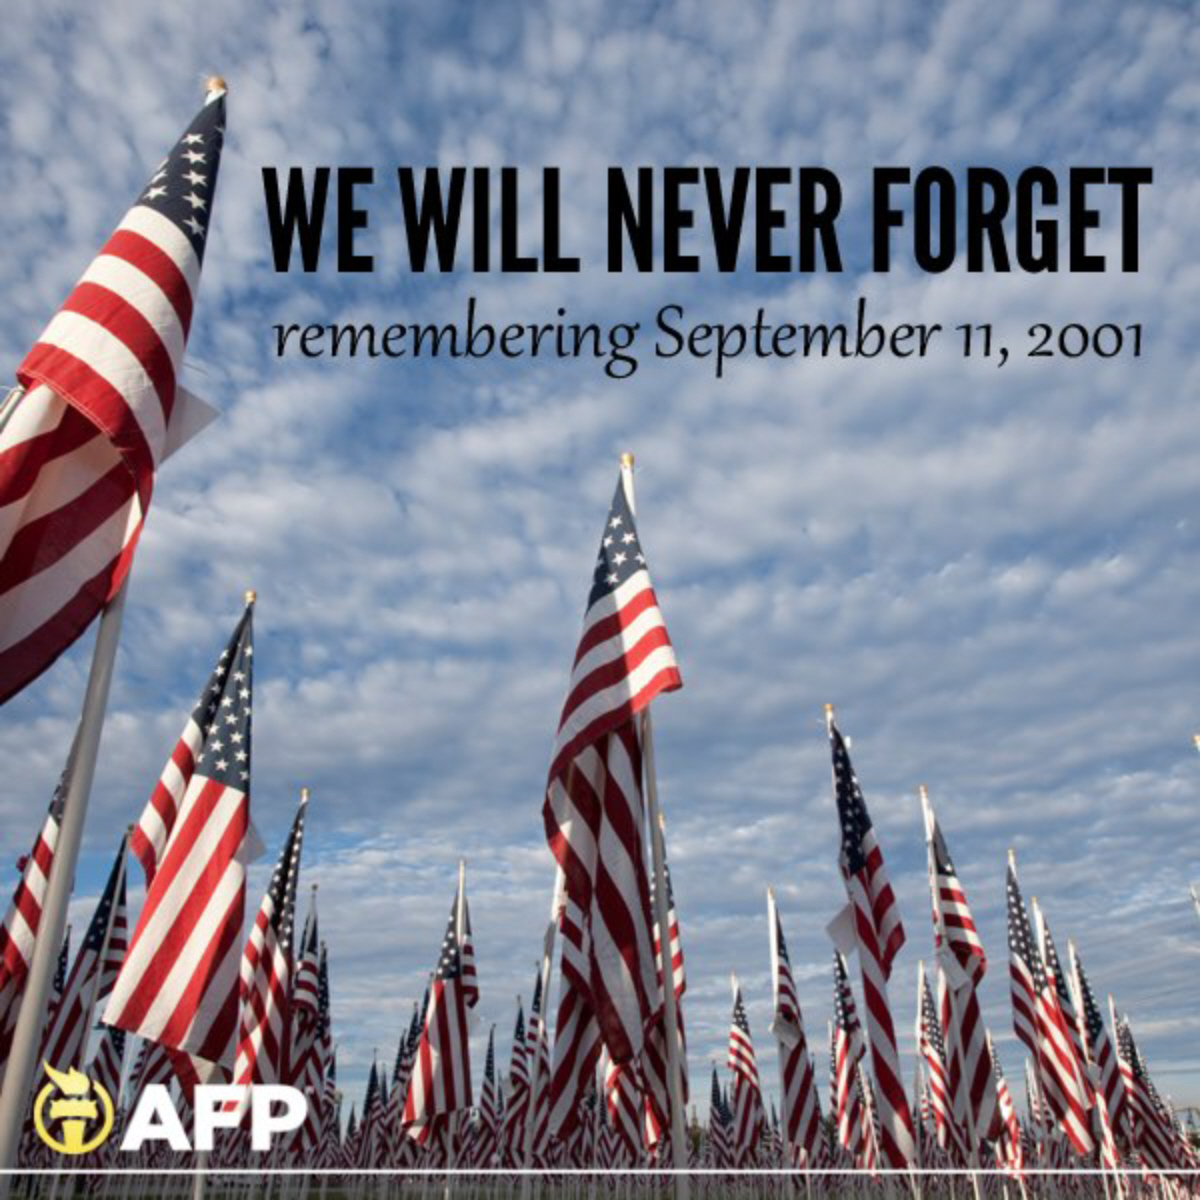 9 11 Never Forget Quotes We Remember 911 On Patriot Day 2012Never Forget  September